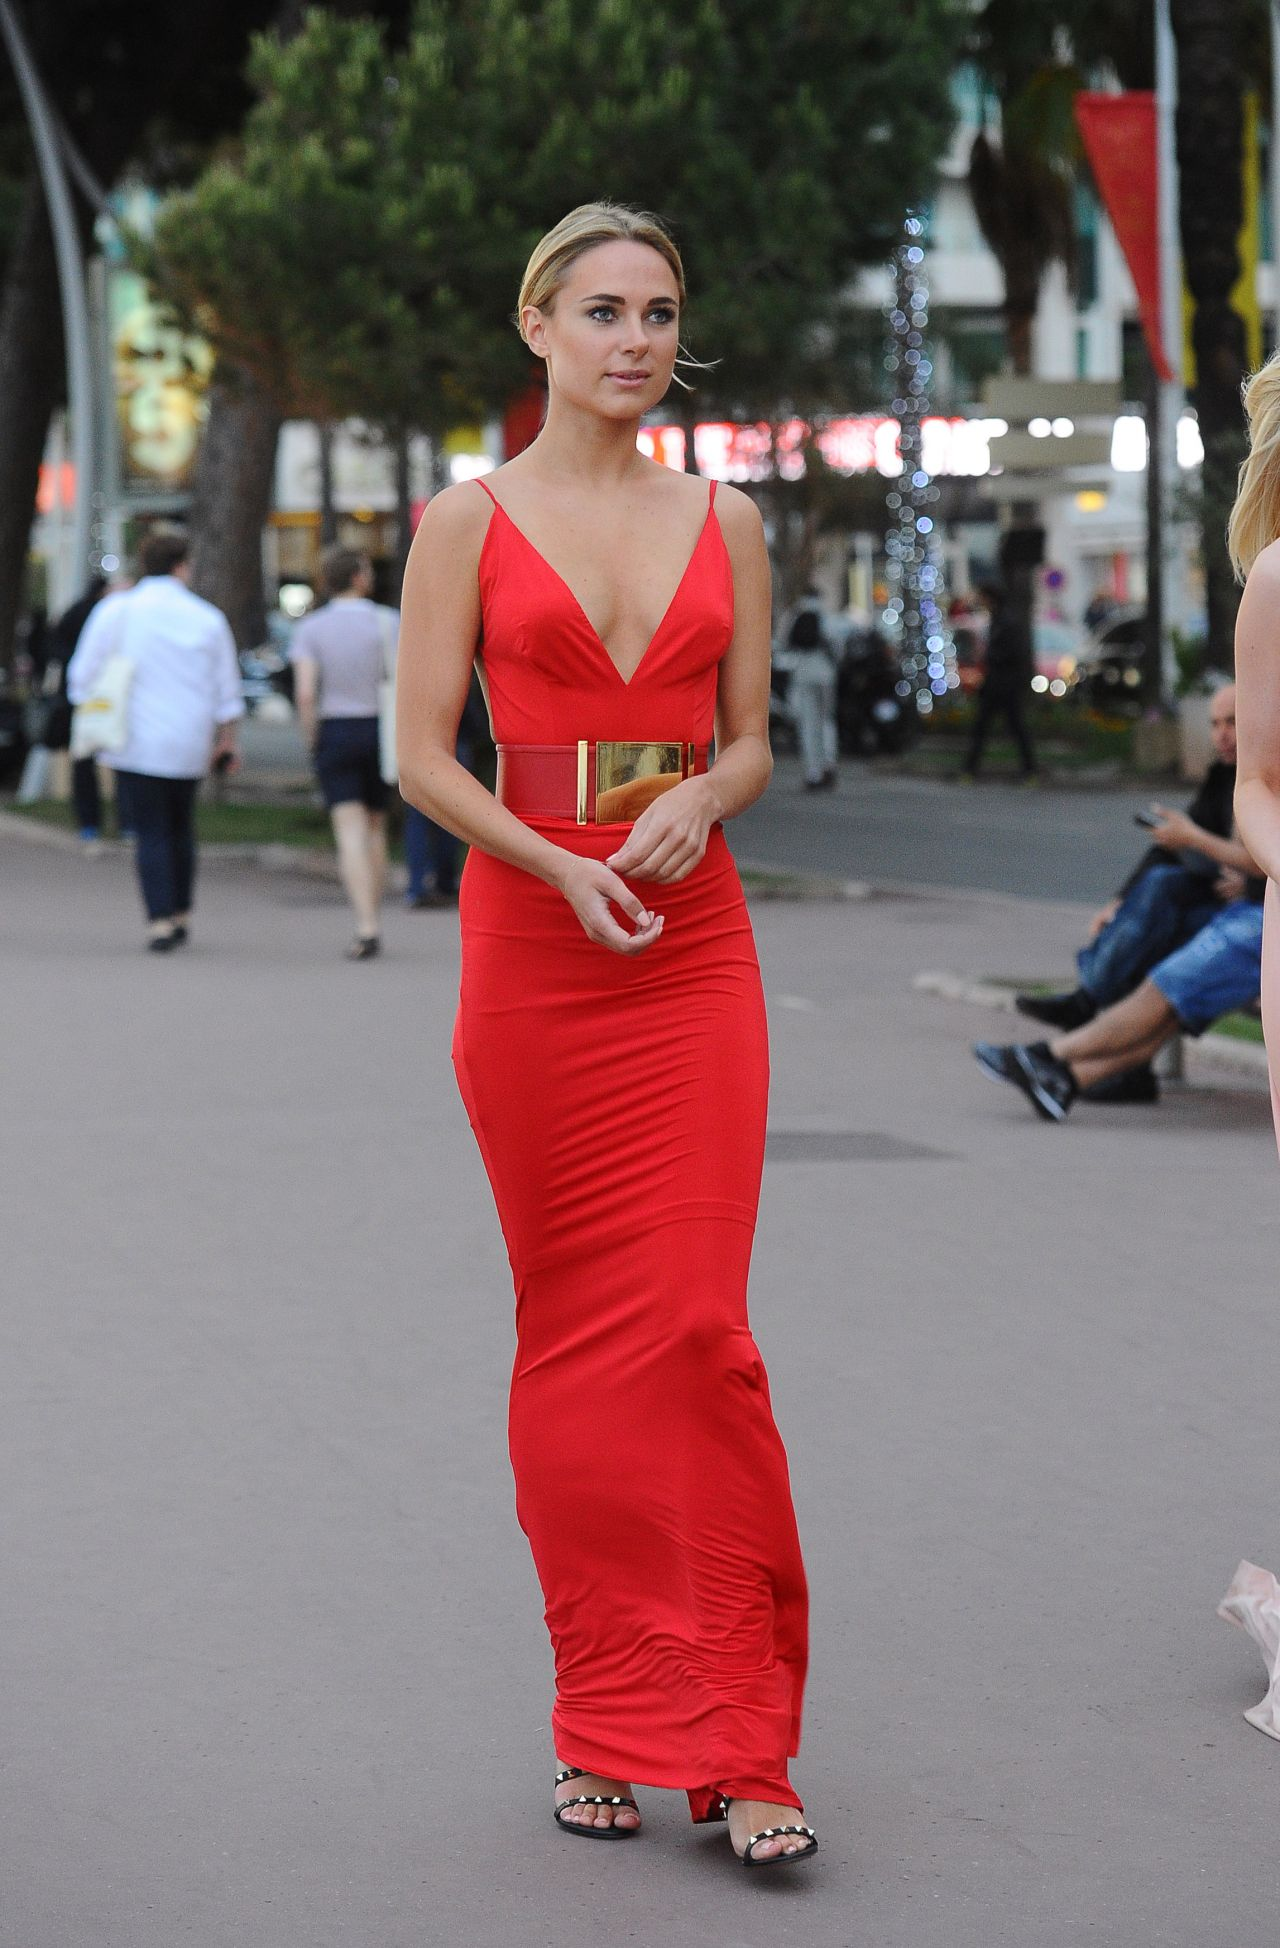 Garner in a Slinky Red Dress at Plage Royale in Cannes 5/18/2016